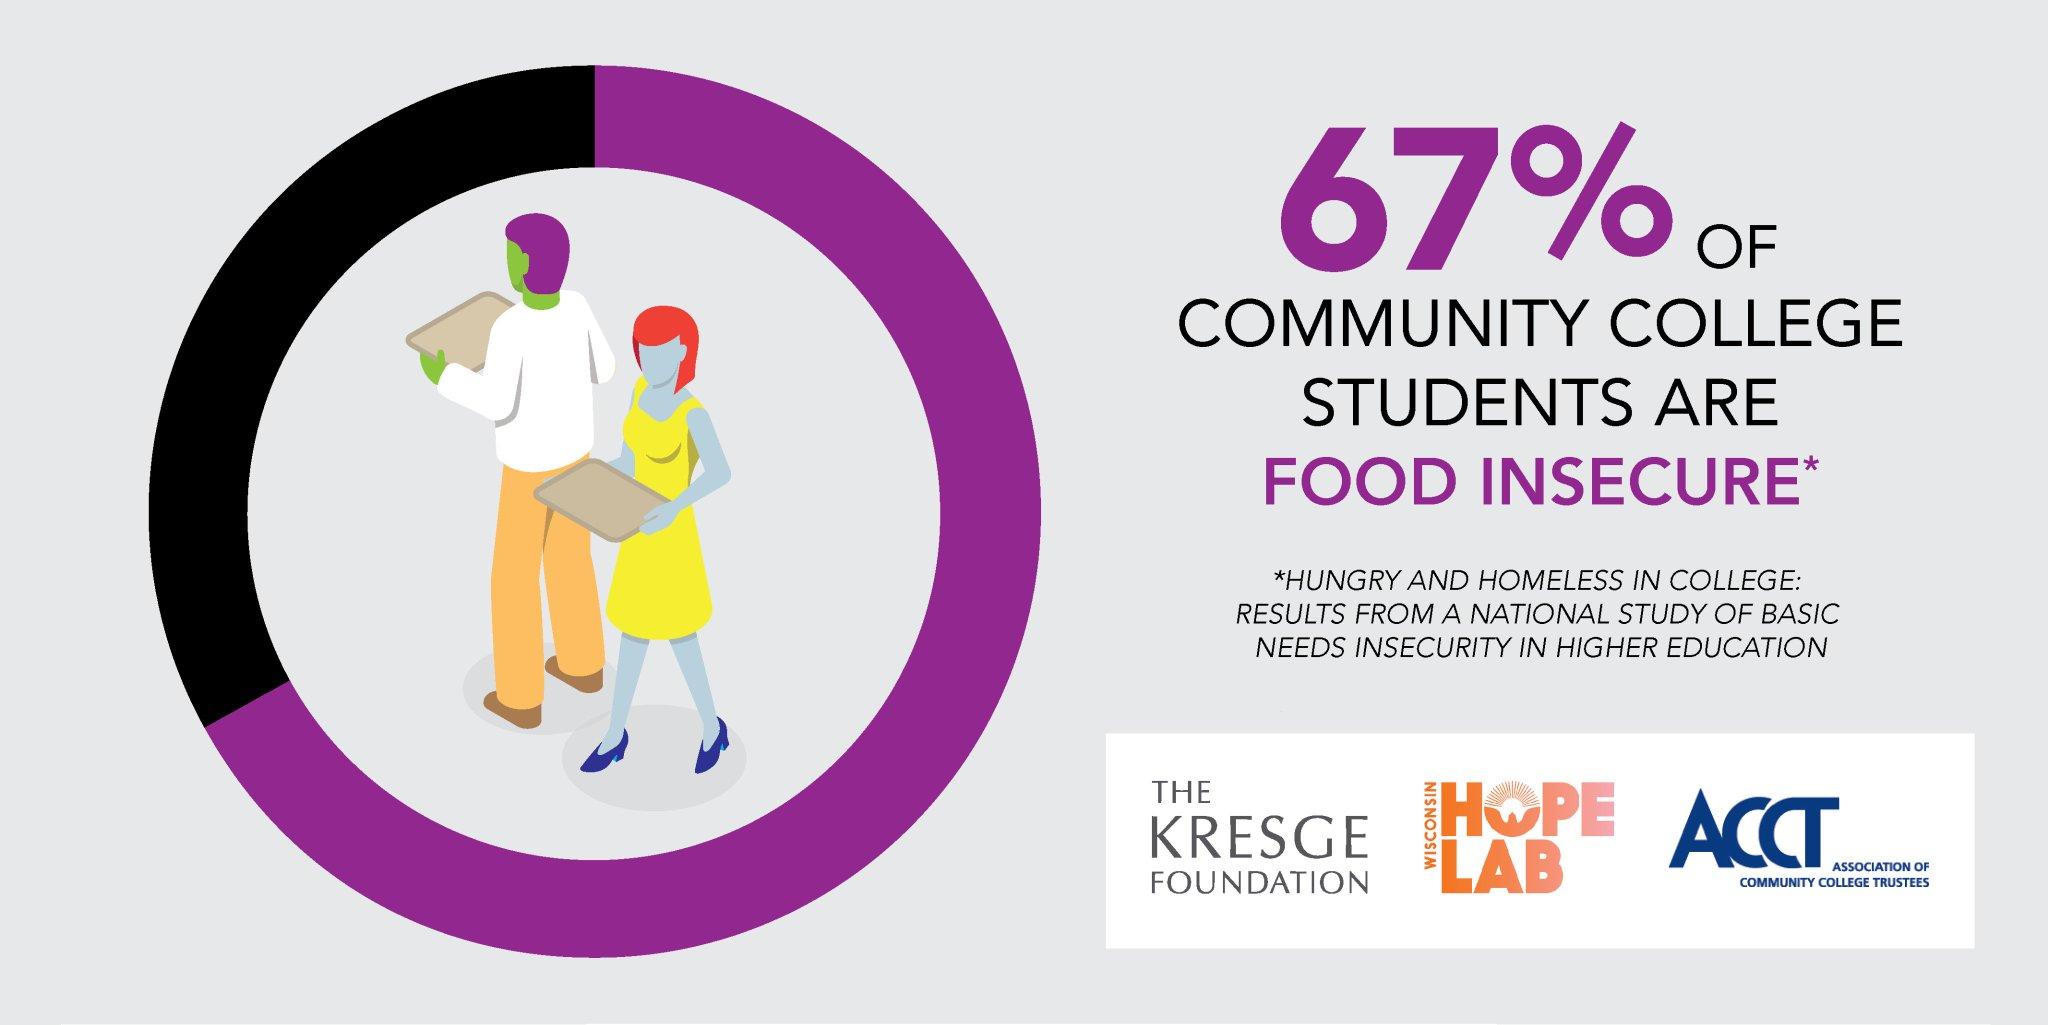 Survey of 33,000 students at 70 community colleges in 24 states assesses food and housing insecurity #hungertownhall https://t.co/z7WtiNXbQd https://t.co/qrsnghyGmB